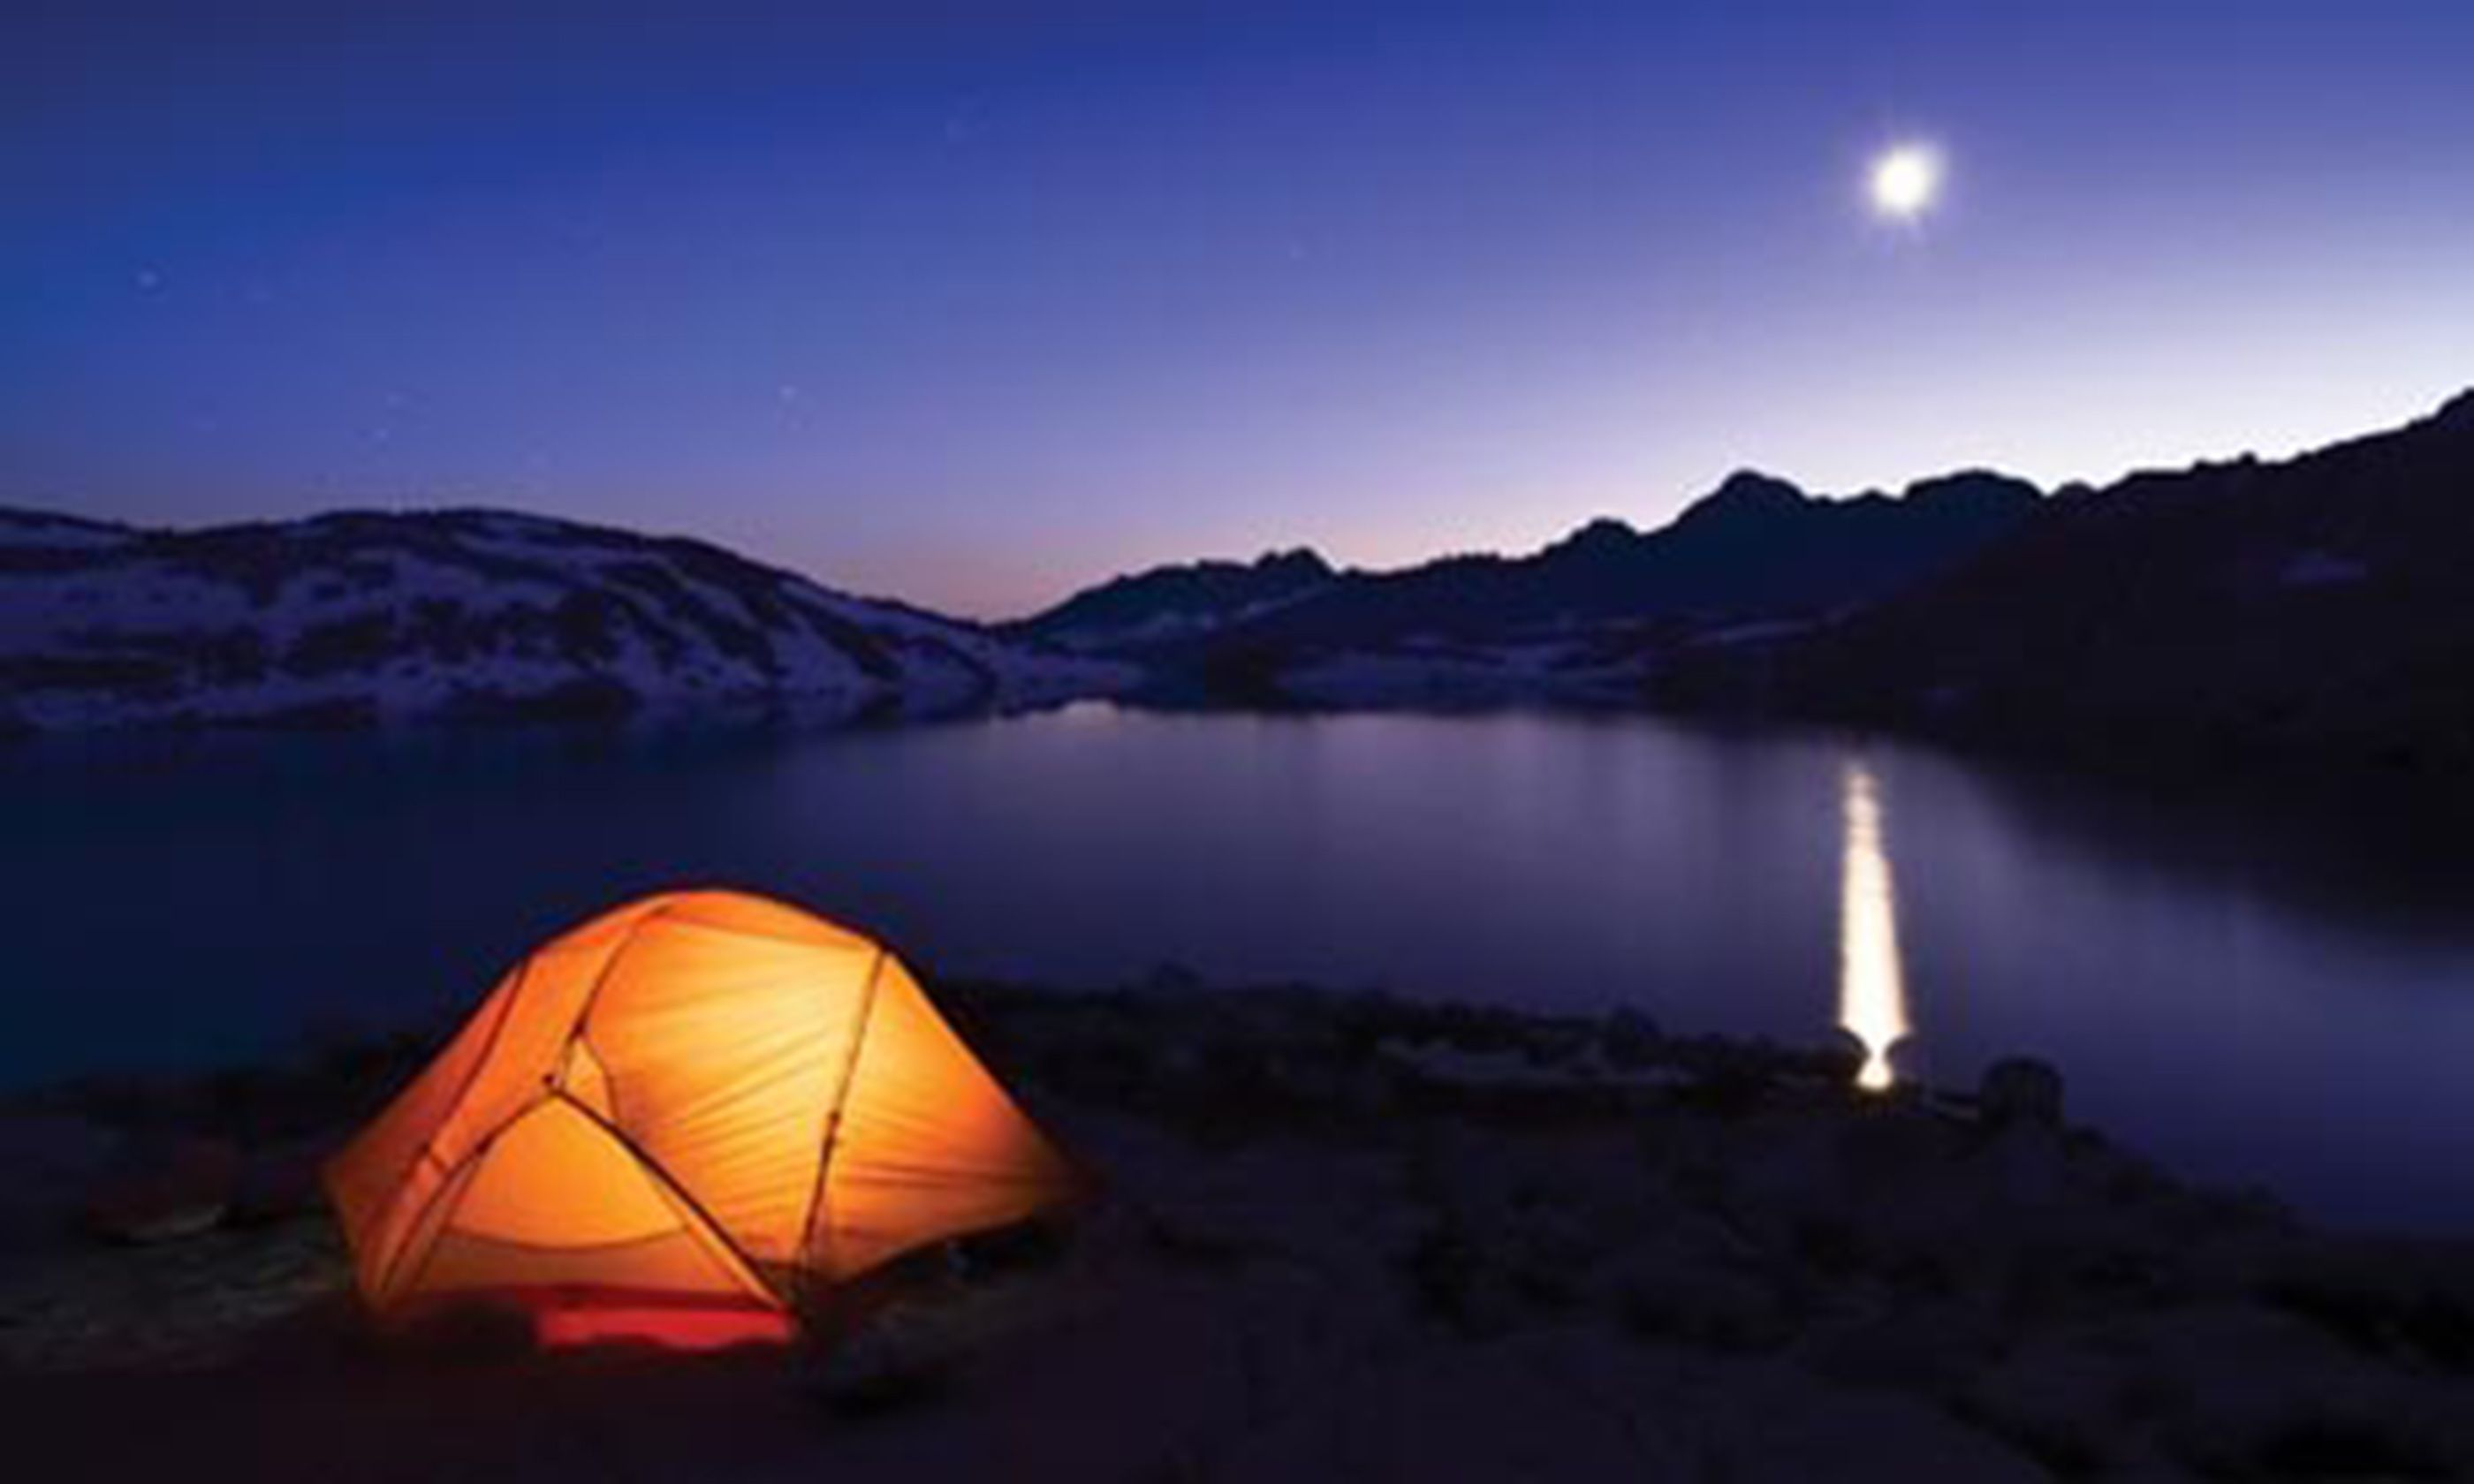 Camping by a lake at night (iStock)